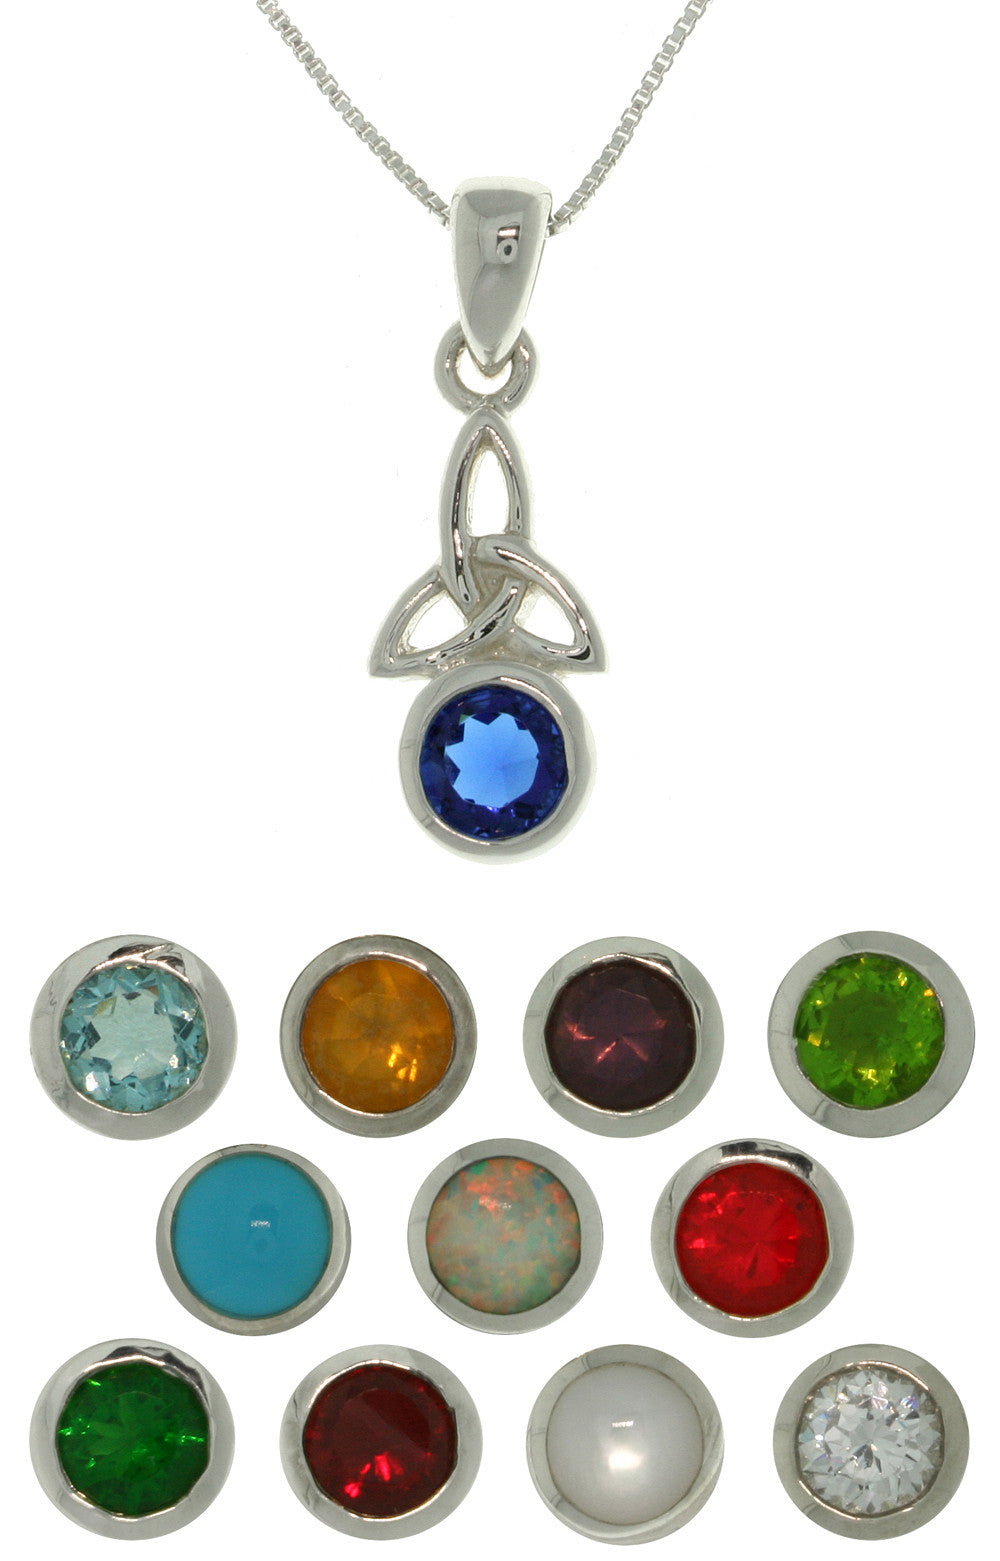 Jewelry Trends Sterling Silver Celtic Trinity Birth Stone Pendant on Box Chain Necklace